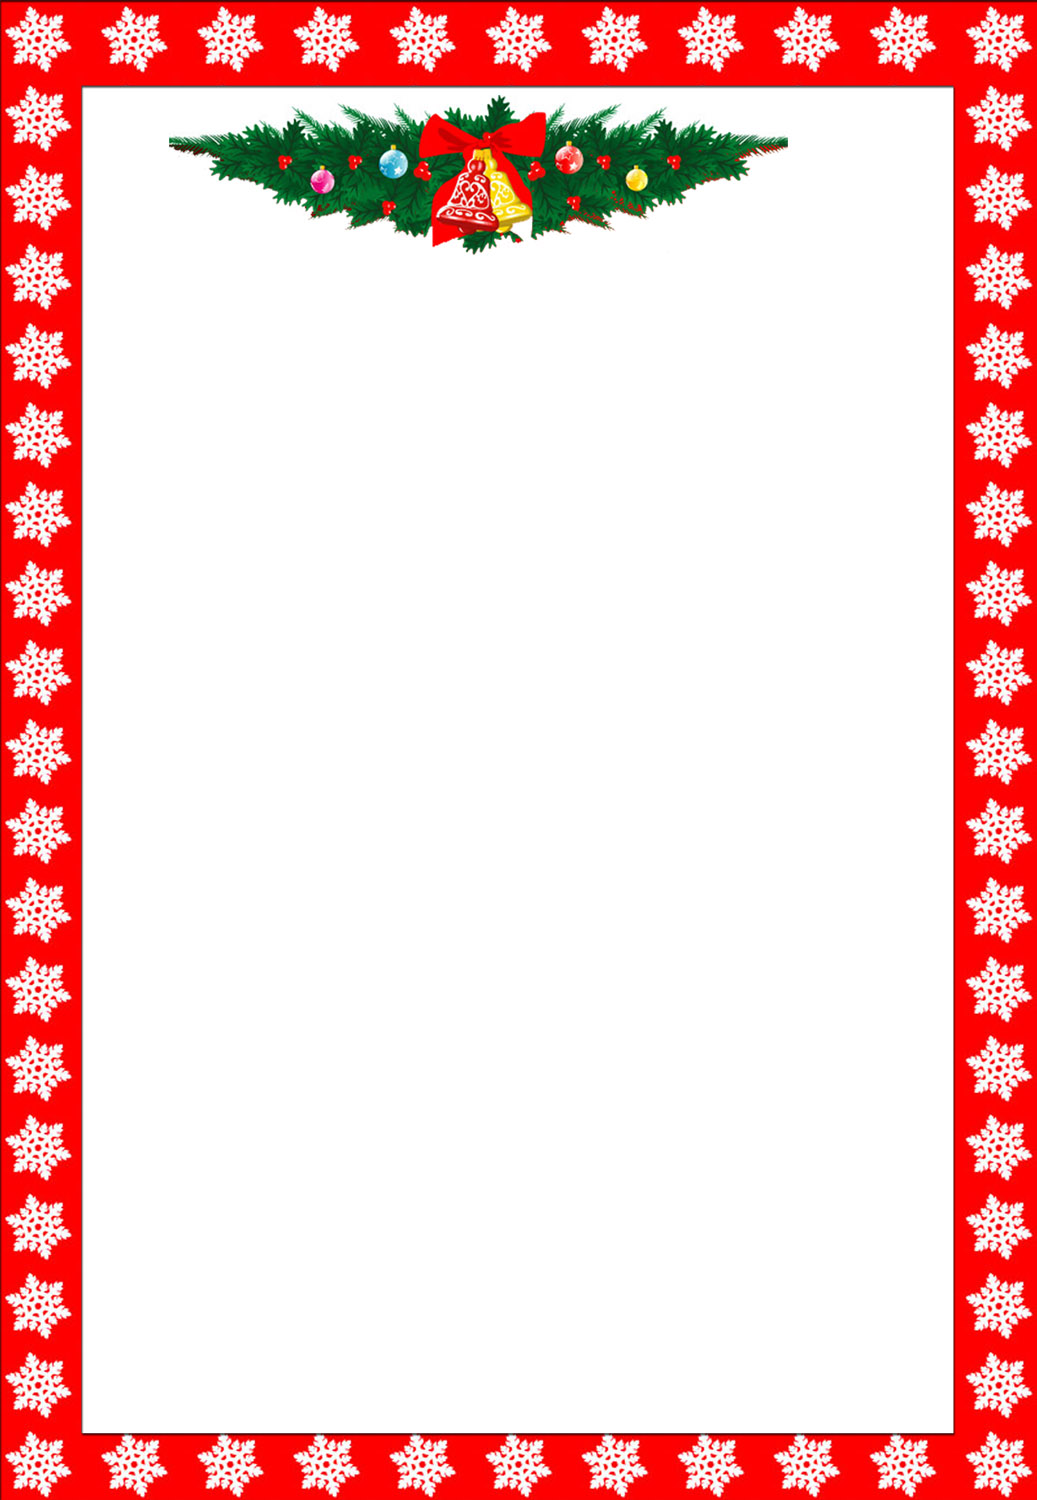 Holiday letter border clipart electronics black and white library Red letter border clipart - ClipartFest black and white library